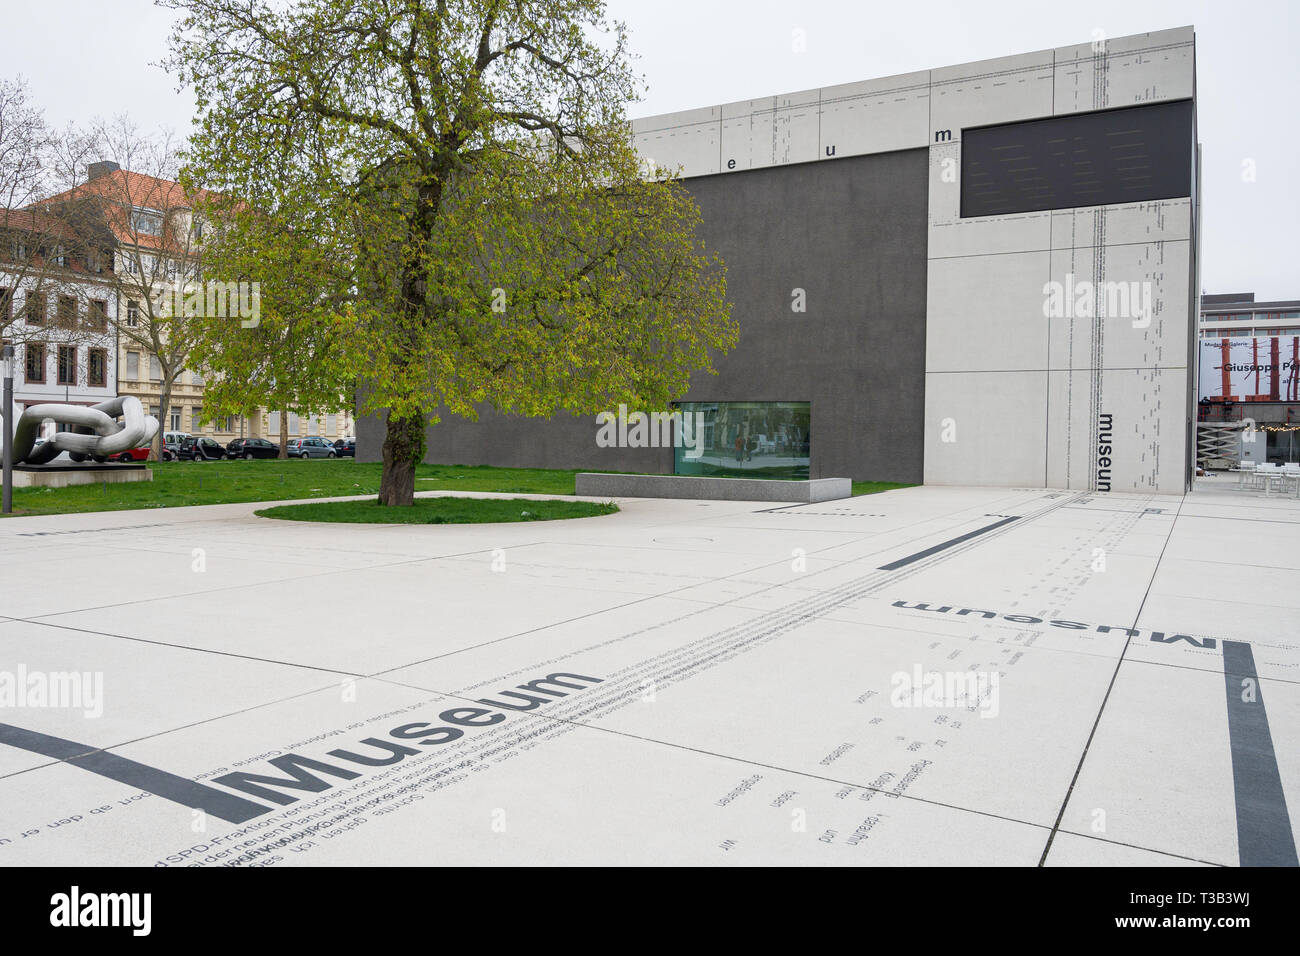 08 April 2019, Saarland, Saarbrücken: The forecourt of the Modern Gallery of the Saarlandmuseum was designed by the artist Michael Riedel. Photo: Oliver Dietze/dpa Stock Photo